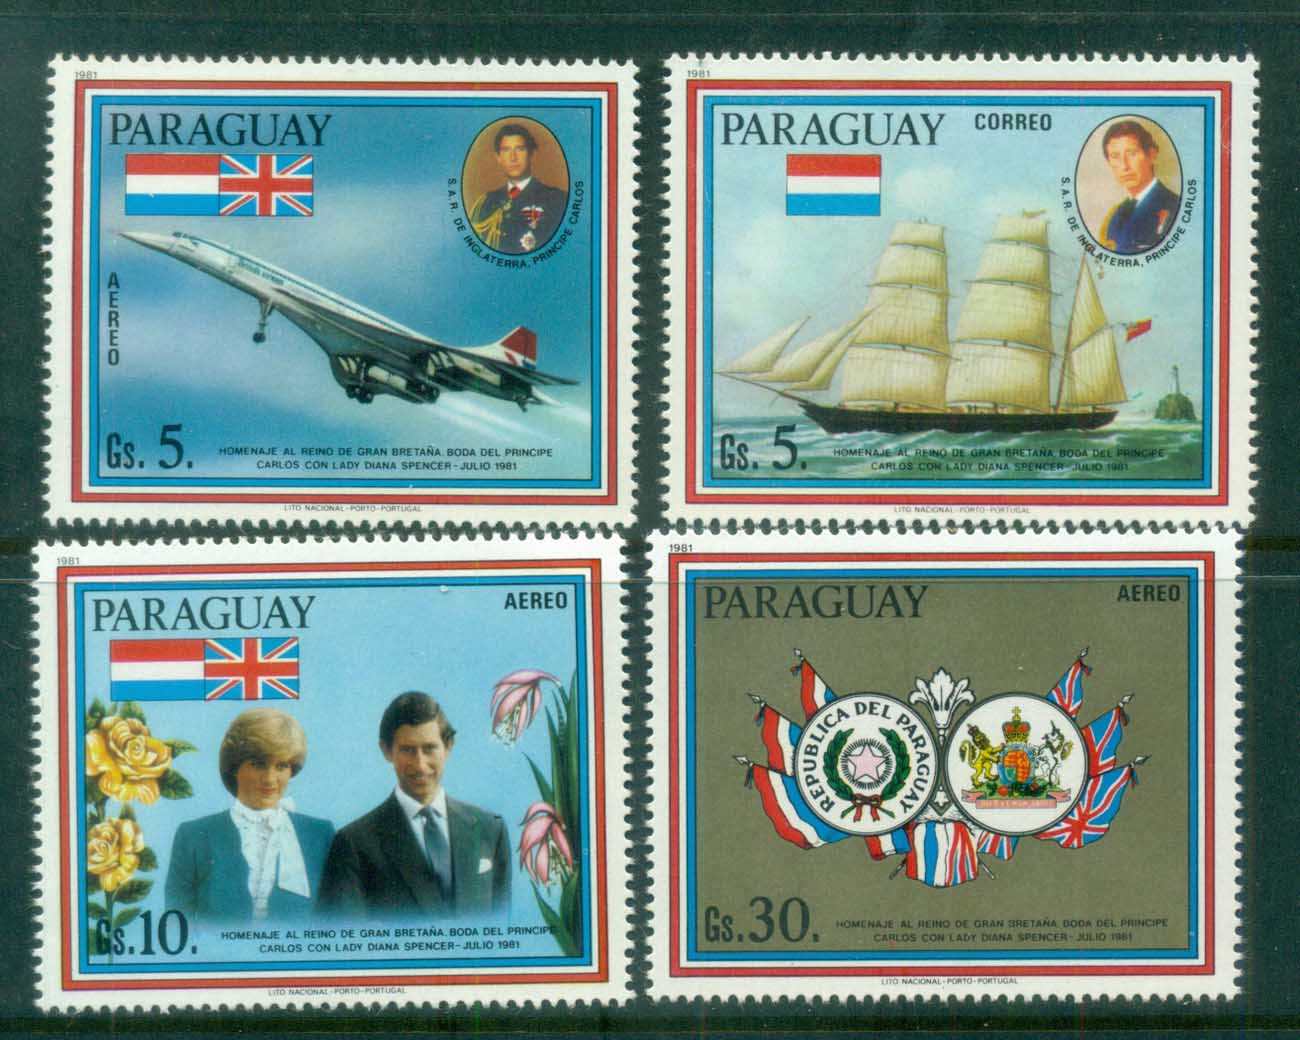 Paraguay 1981 Charles & Diana Royal Wedding MUH lot81924